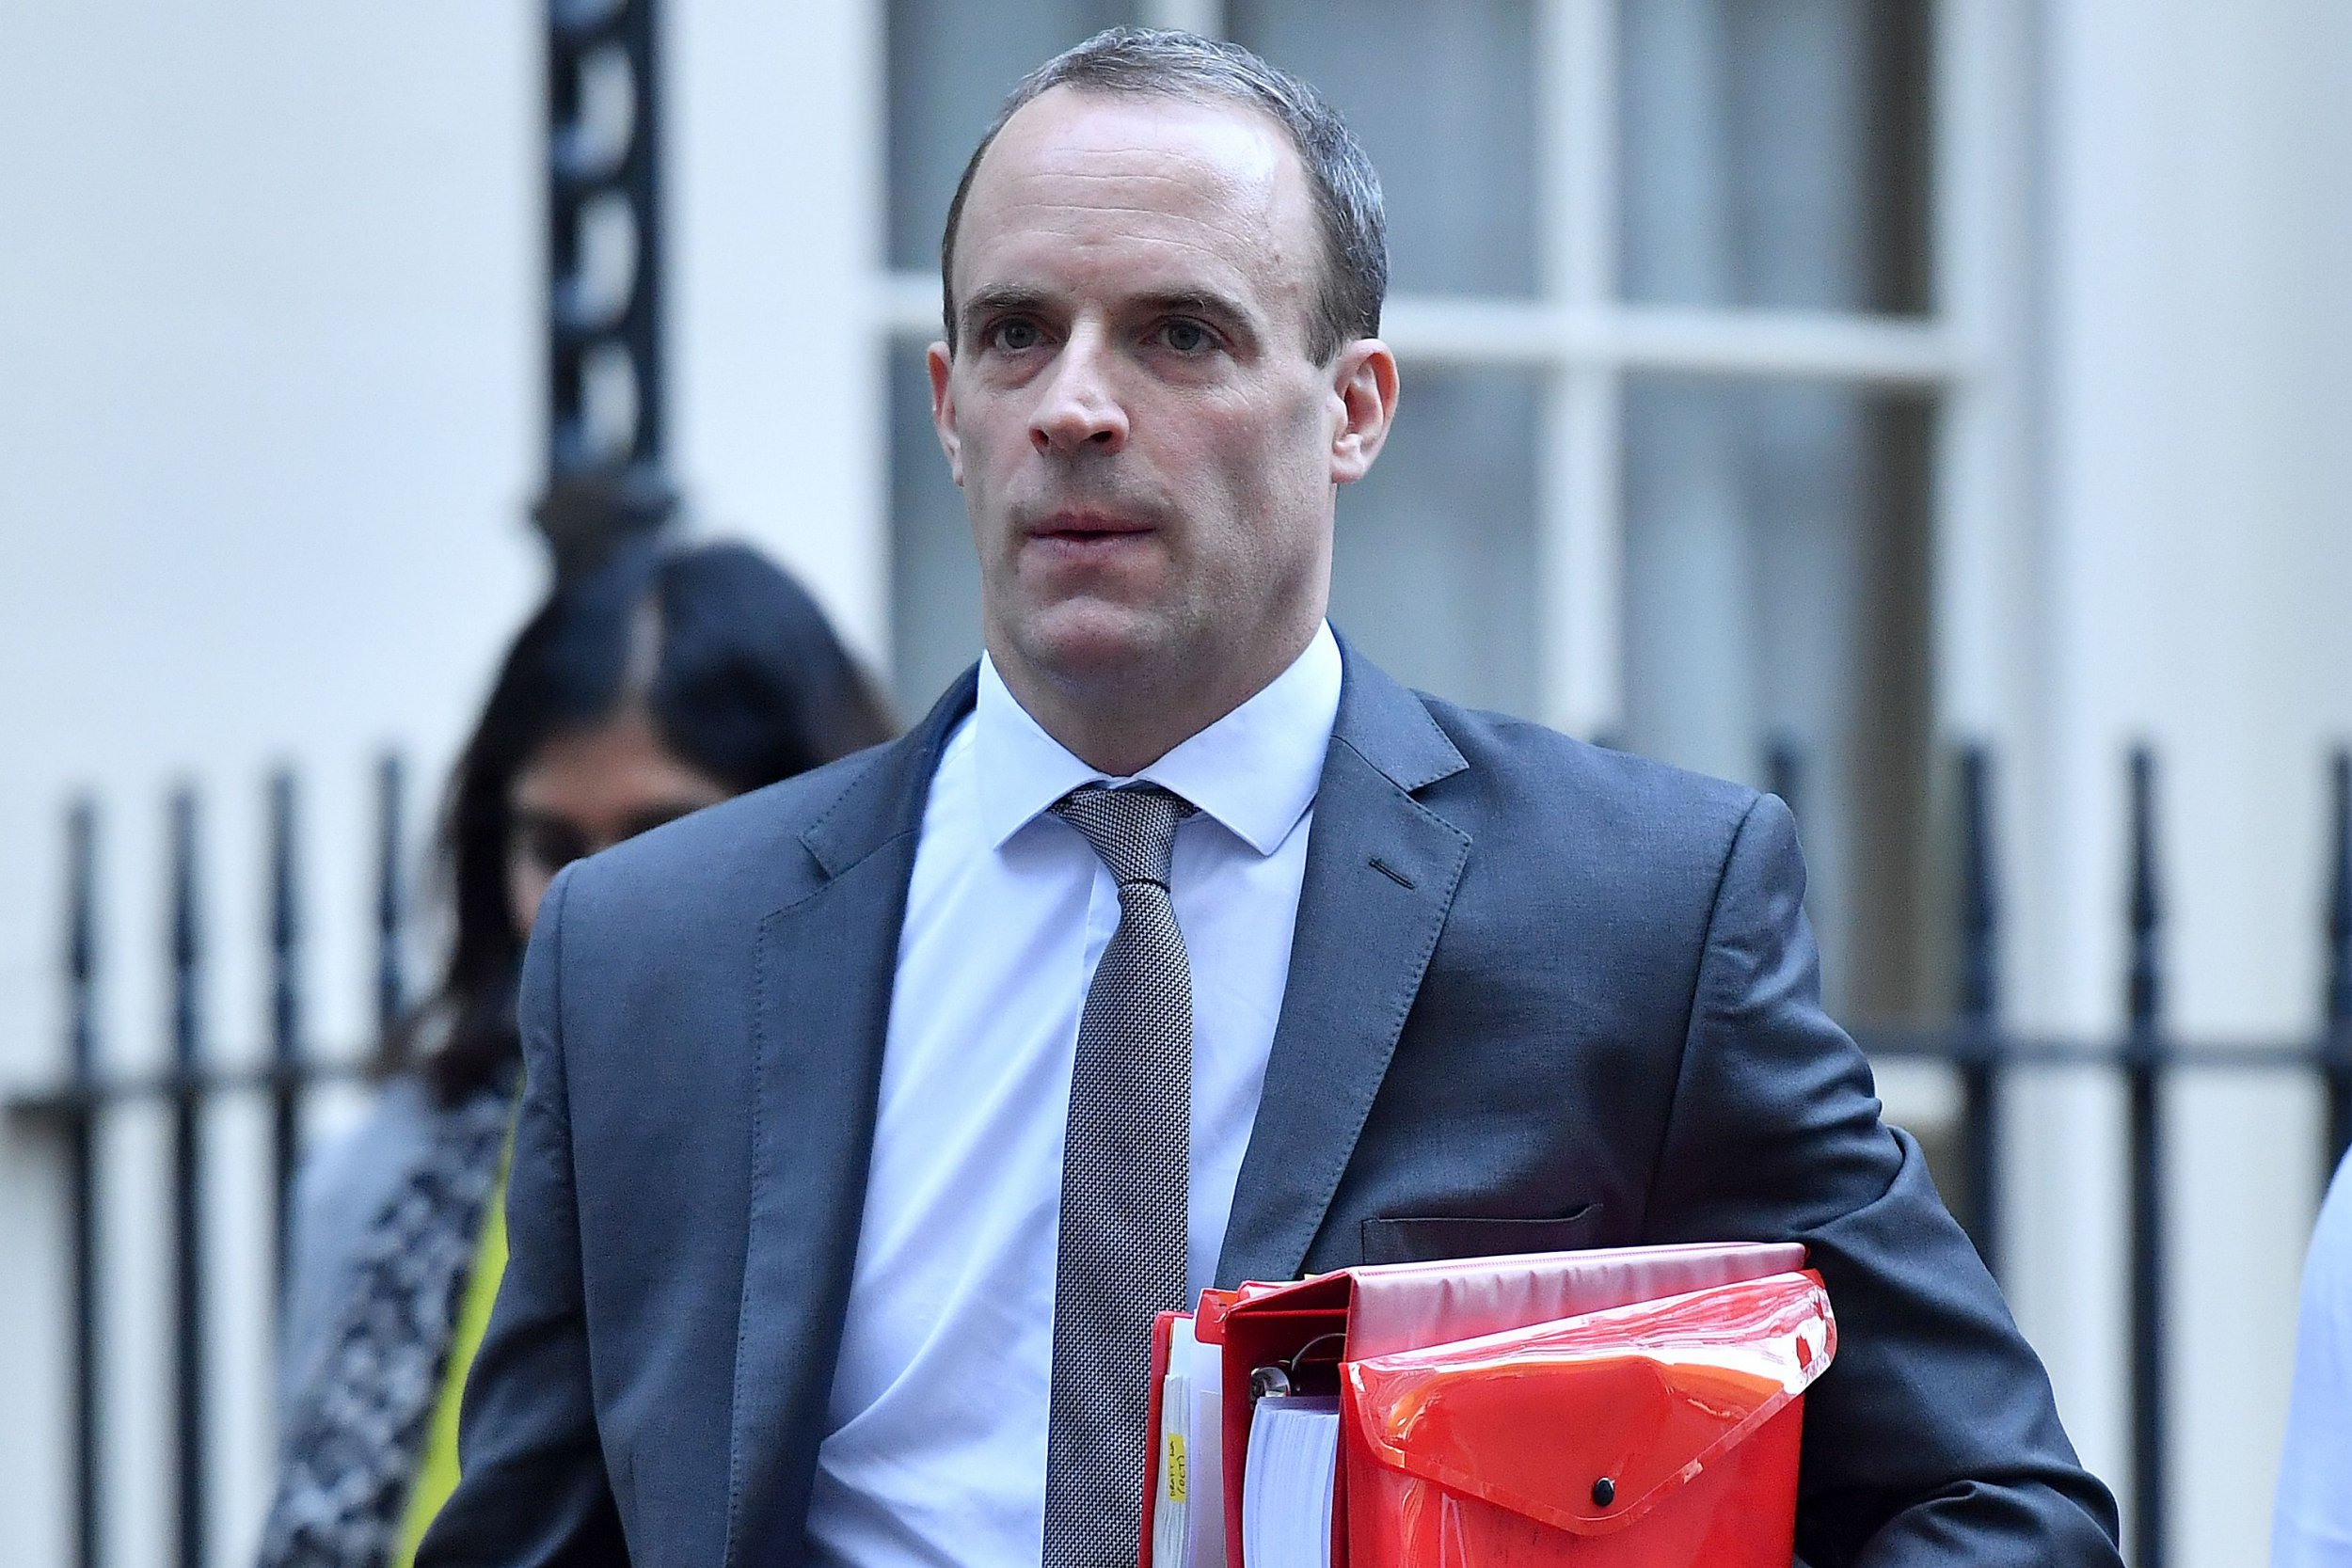 Dominc Raab favourite to be next Conservative leader but Jeremy Corbyn backed to be next Prime Minister